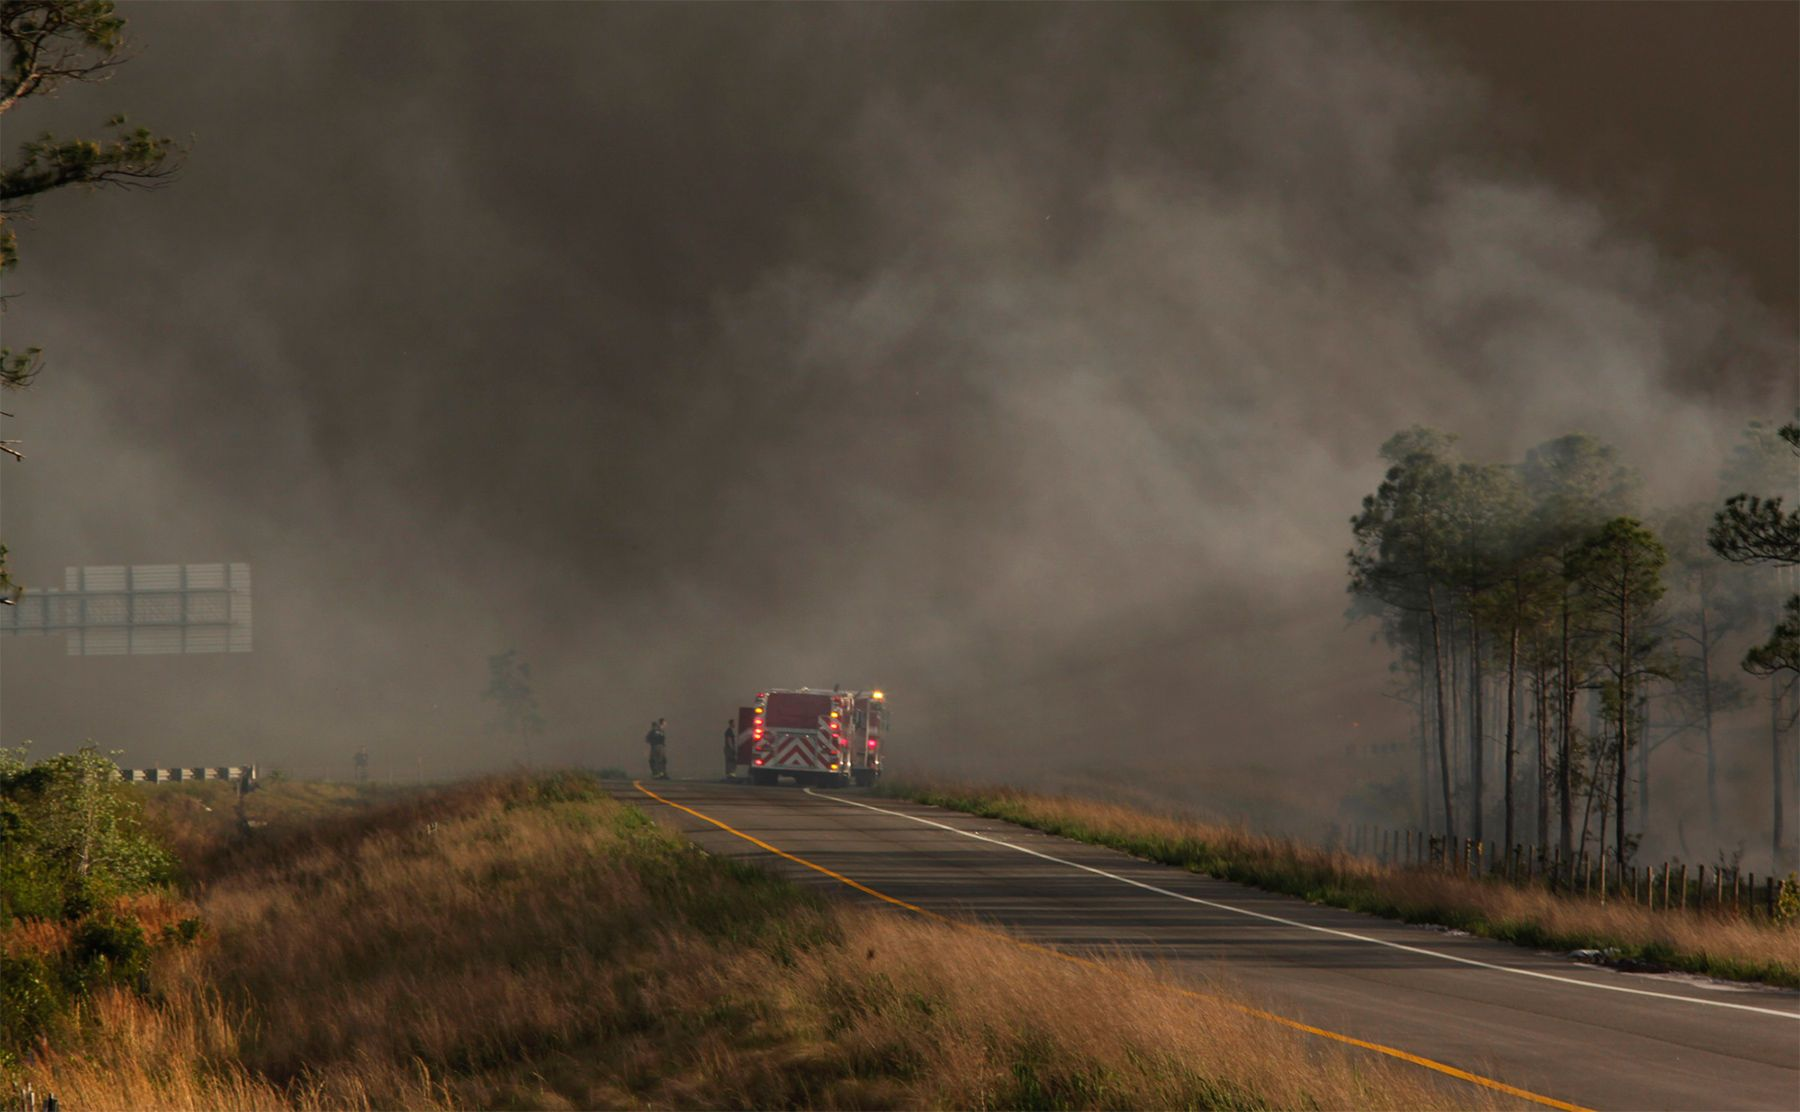 Firemen battle the brush fire at an exit ramp onto Highway 31 from Water Tower Road Wednesday in Horry County.